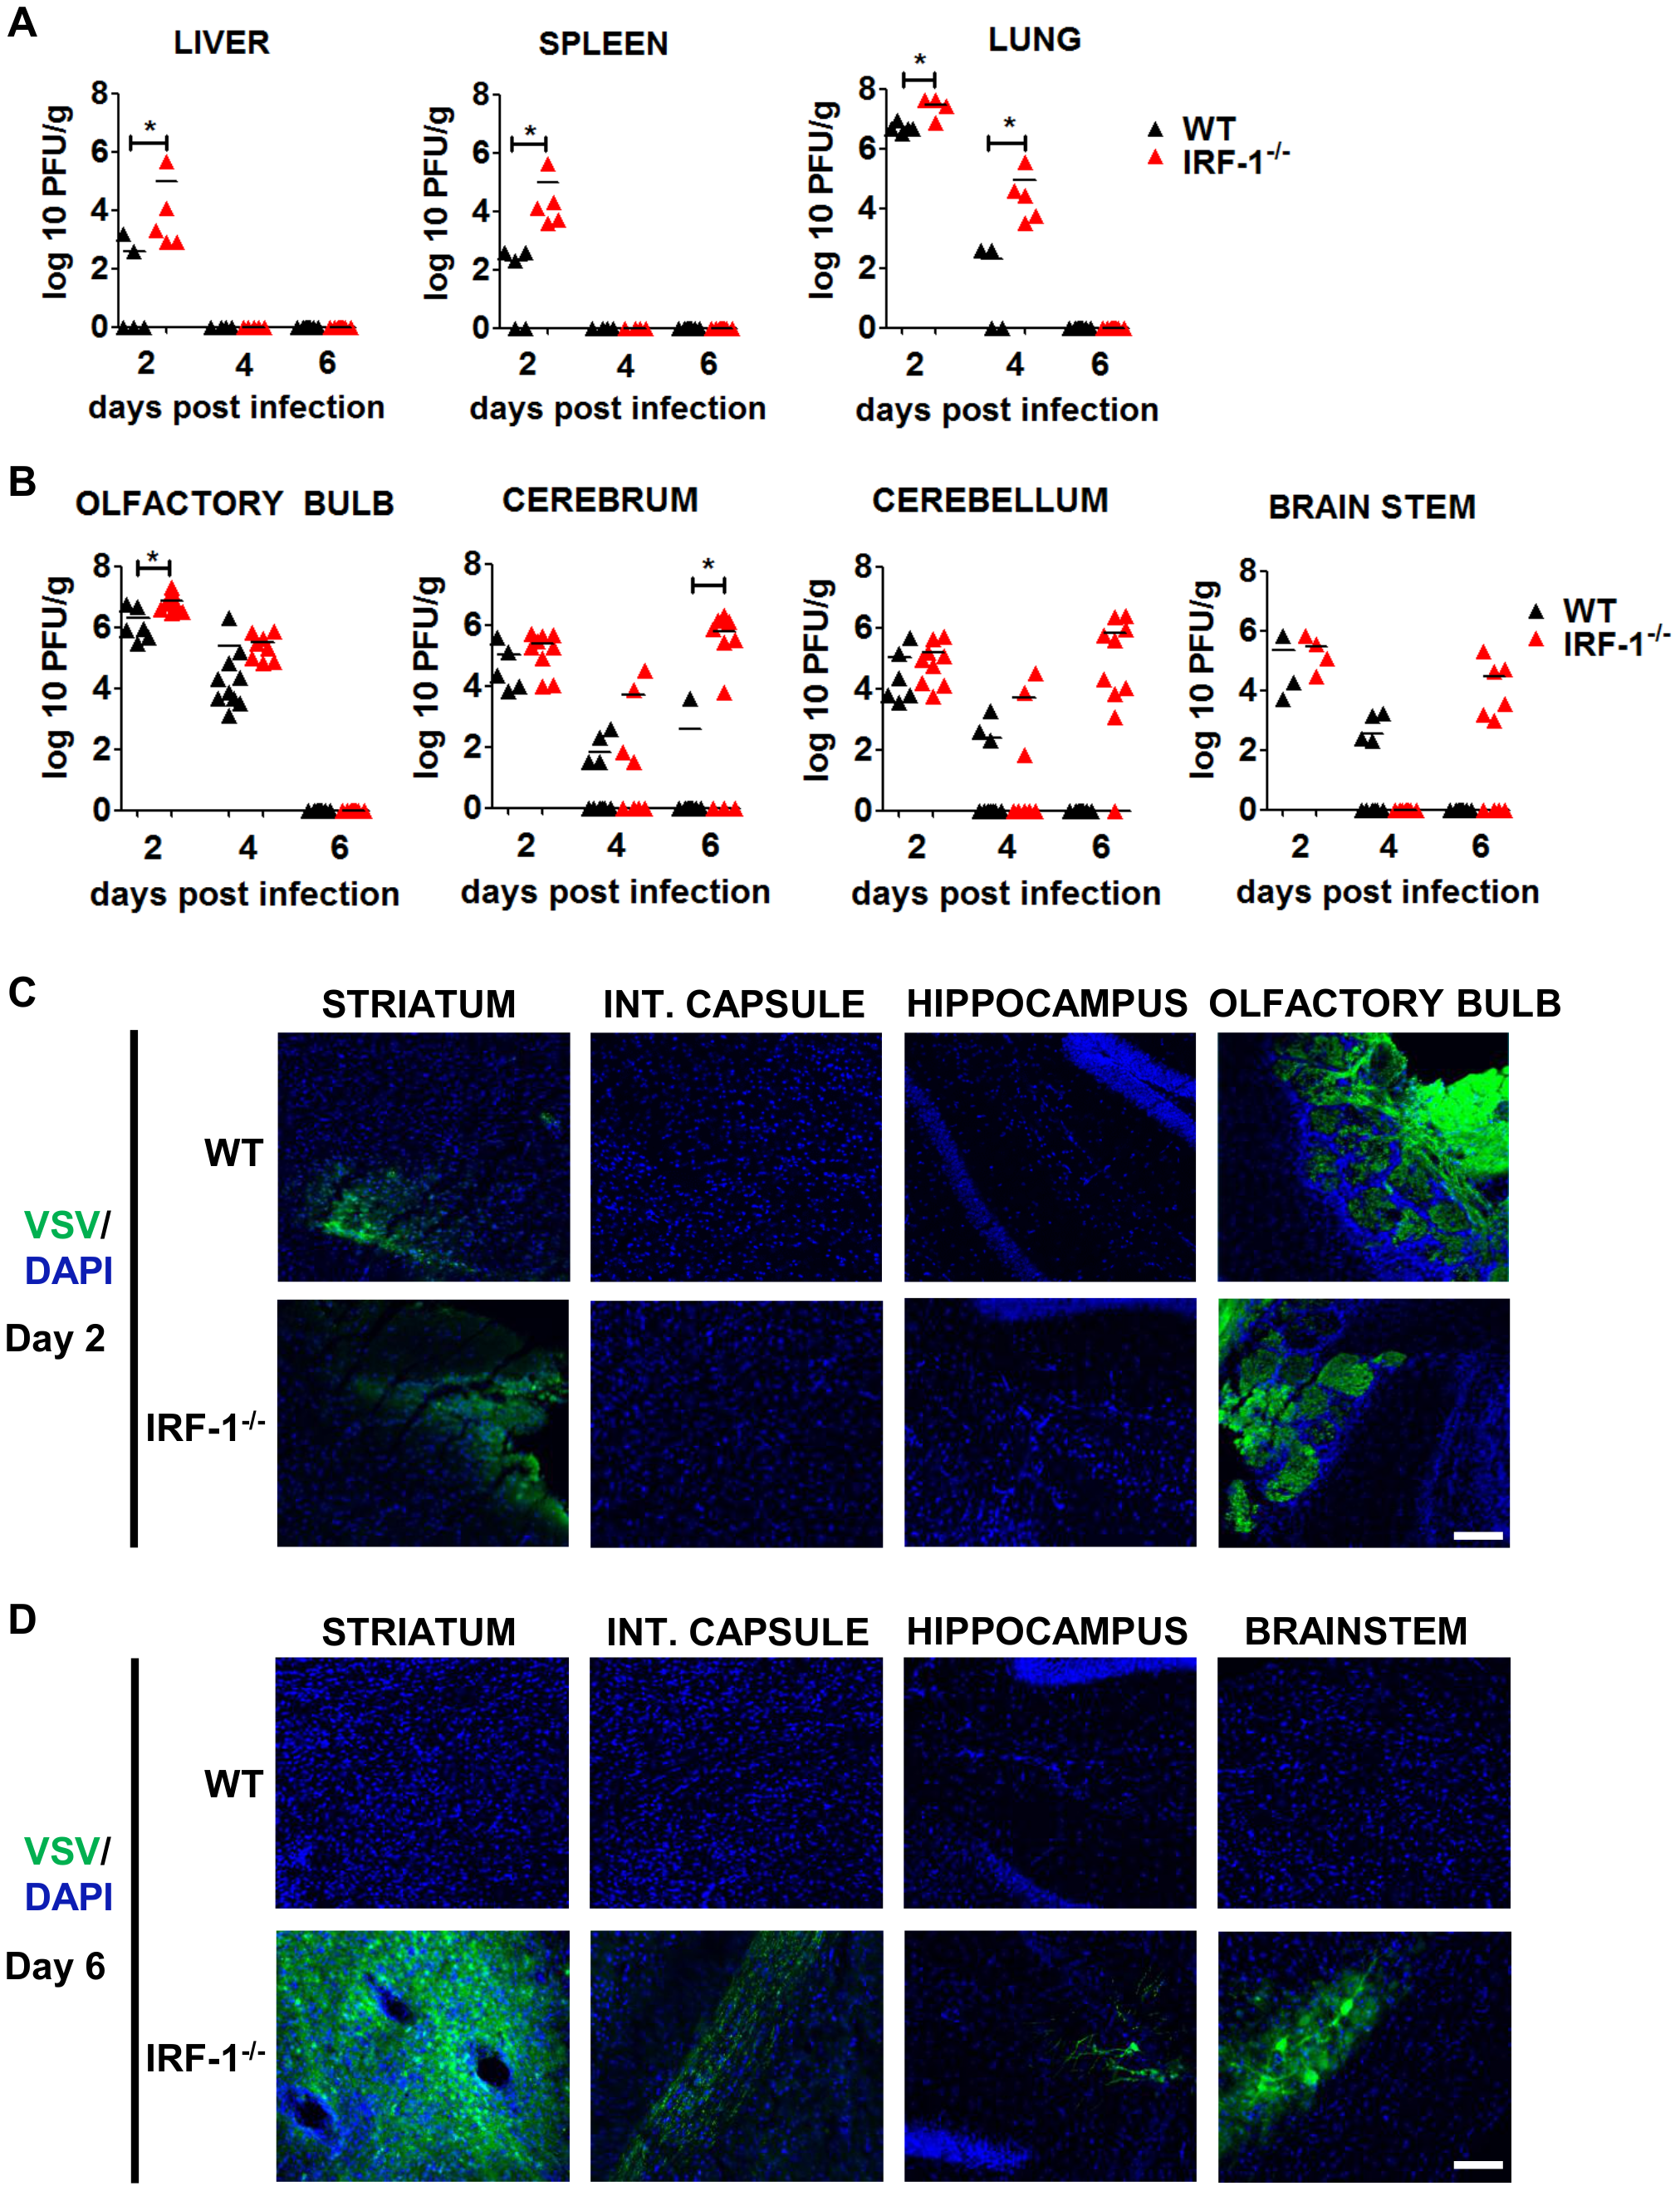 IRF-1 mediated antiviral effect is critical for viral replication during later stages of viral replication in the brain.